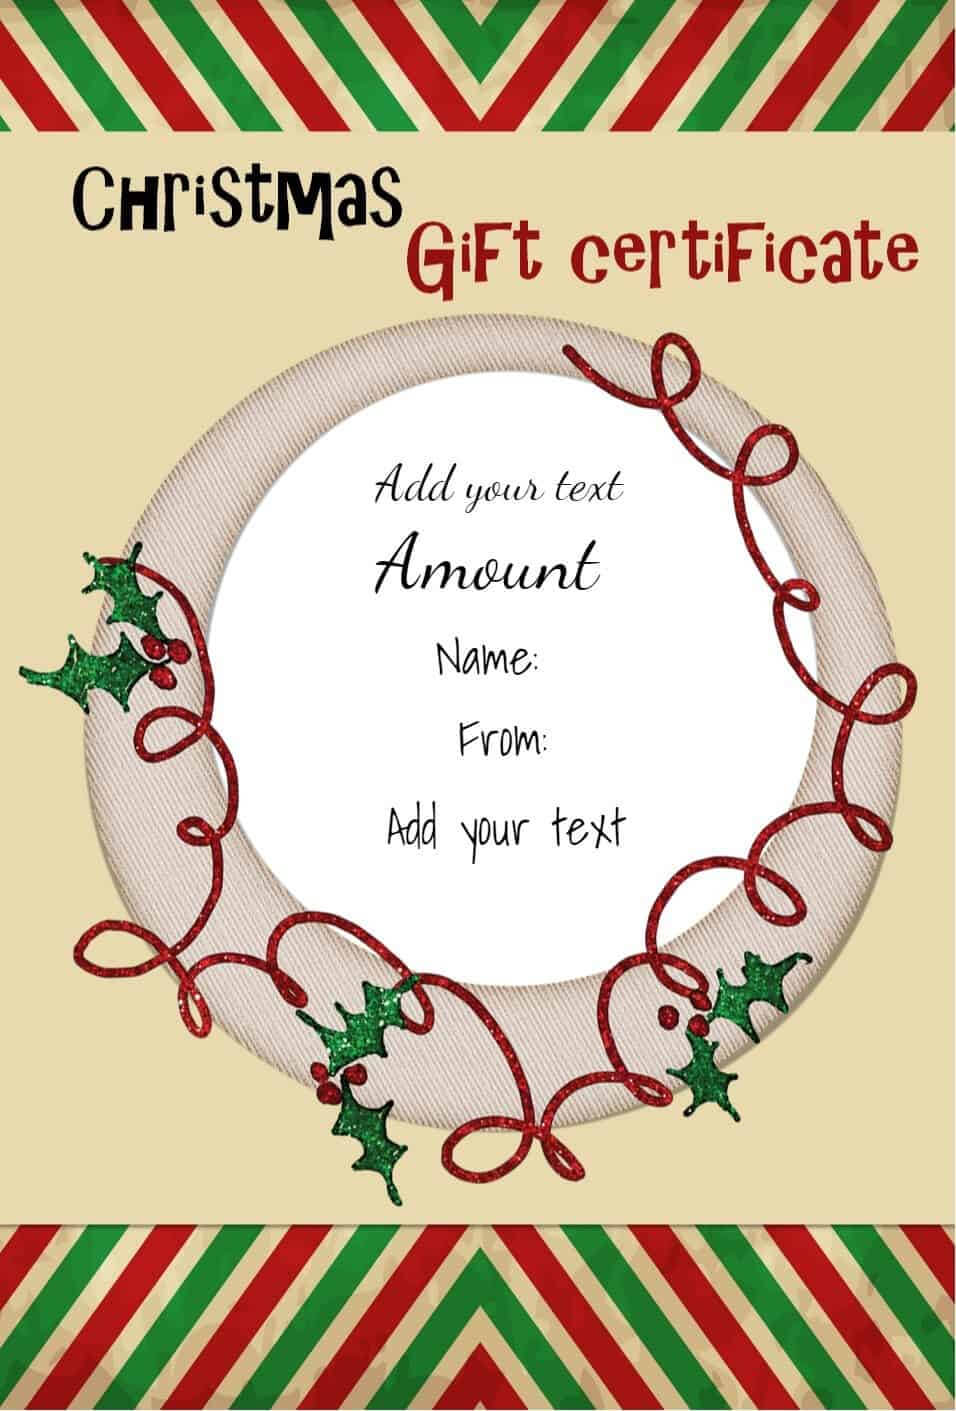 Free Christmas Gift Certificate Template | Customize Online Pertaining To Free Christmas Gift Certificate Templates